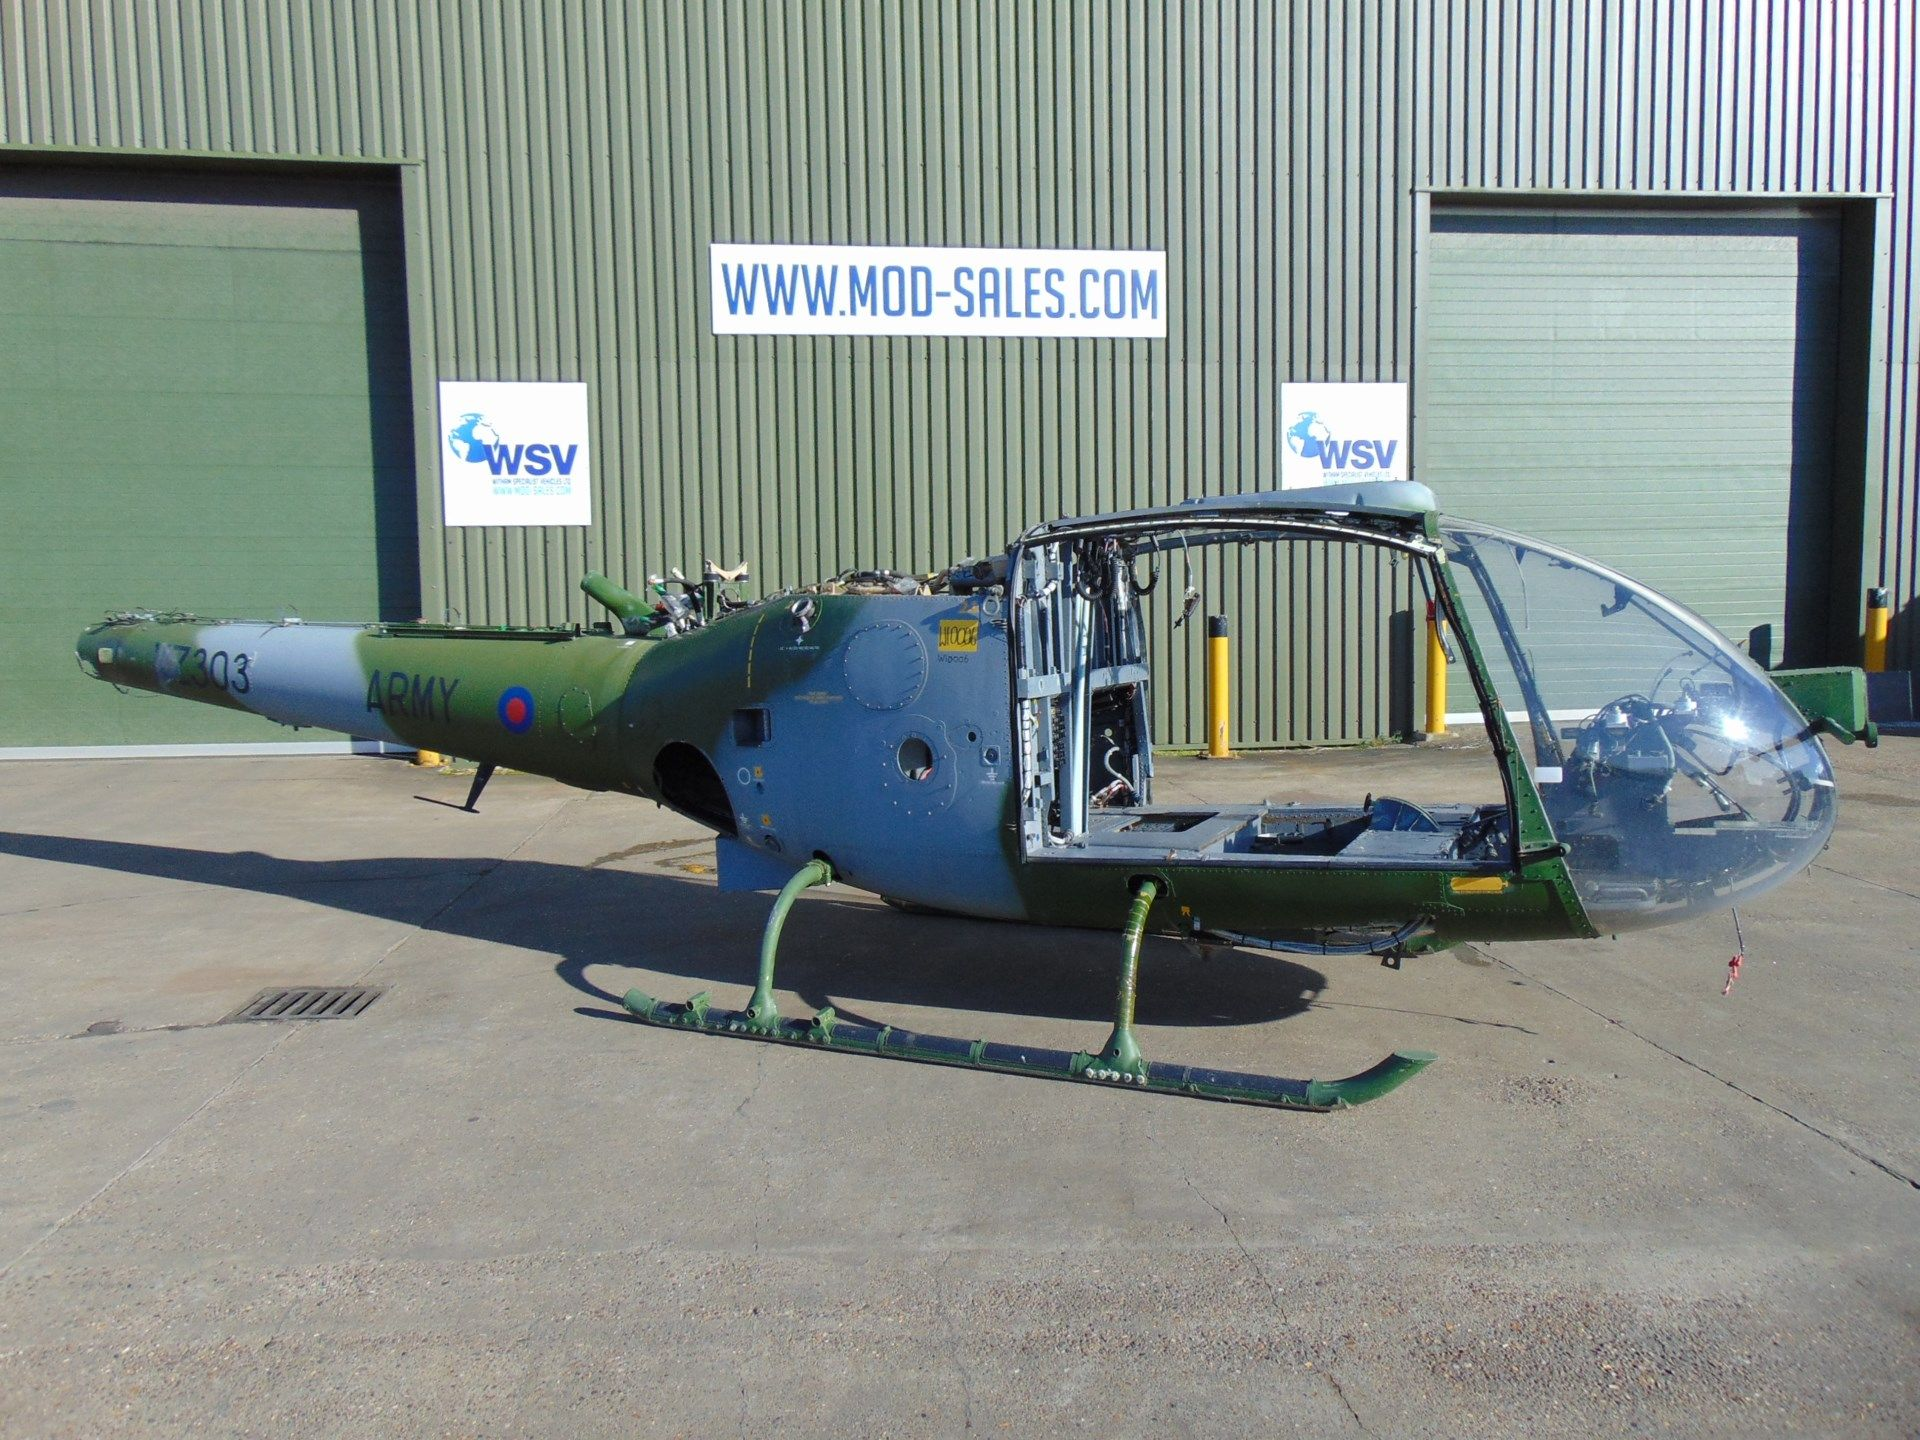 Lot 268 - Gazelle AH 1 Turbine Helicopter Airframe (TAIL NUMBER XZ303)